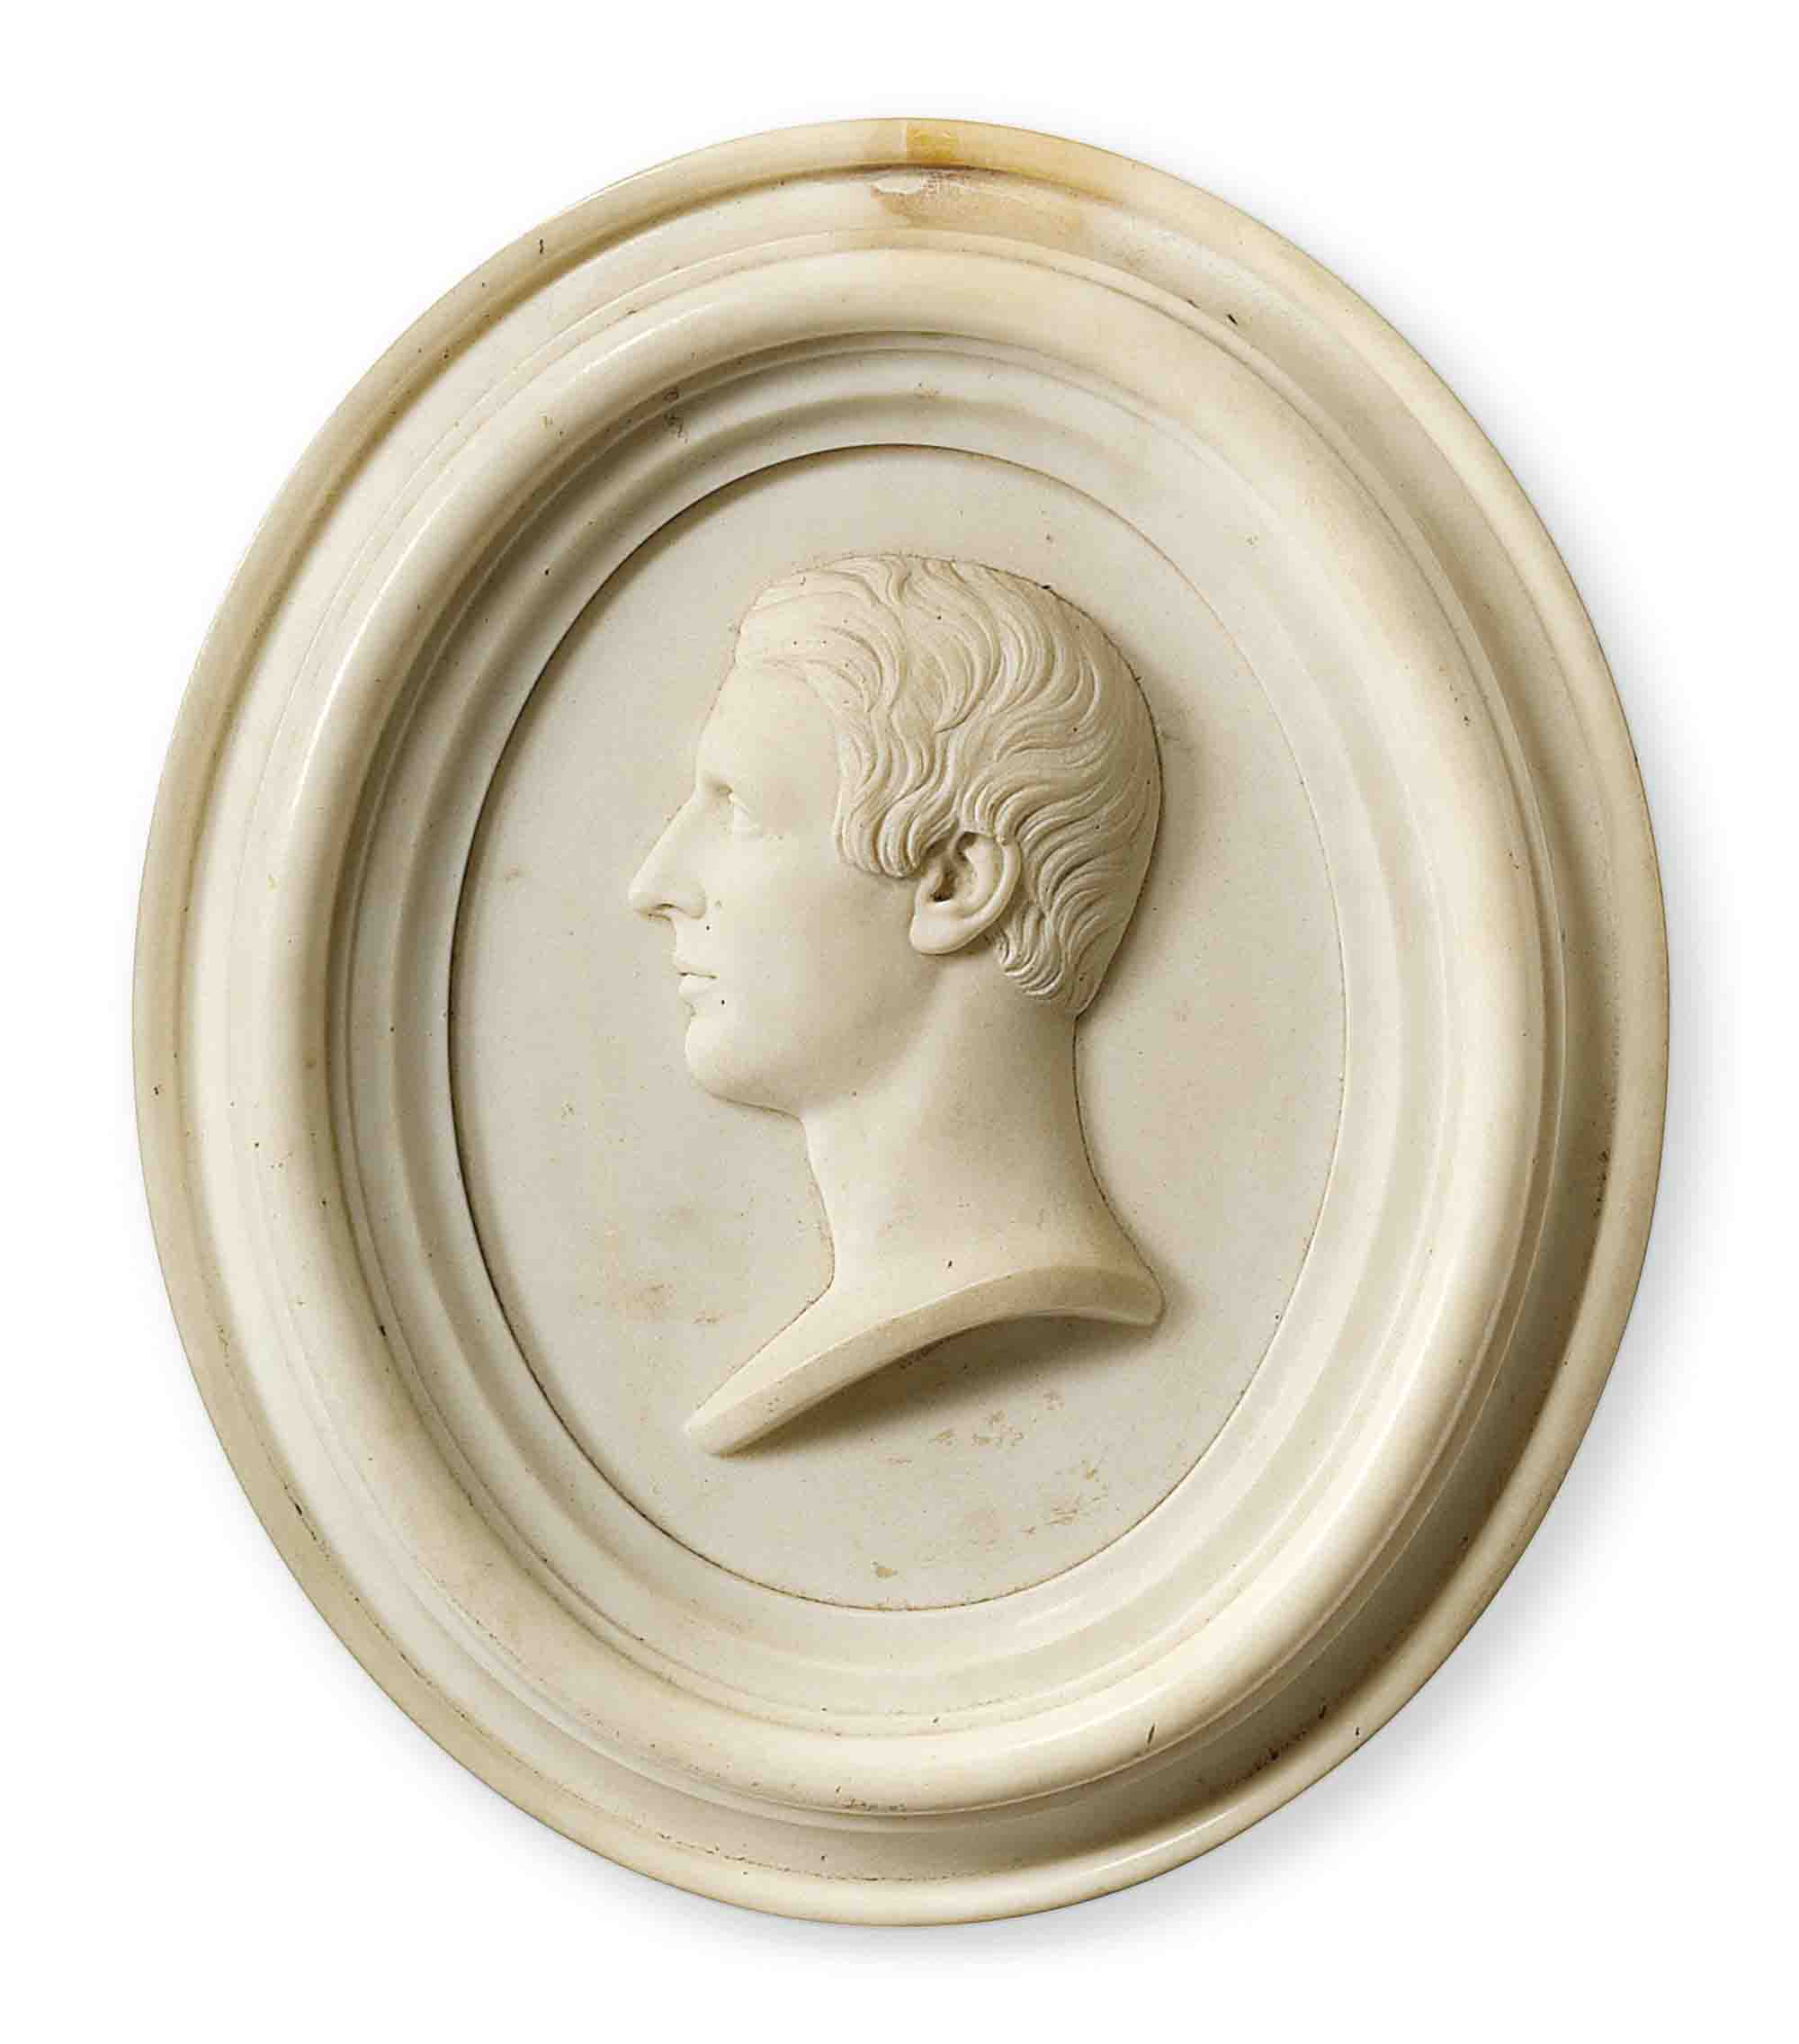 AN OVAL WHITE MARBLE BAS-RELIEF PROFILE PORTRAIT OF A GENTLEMAN